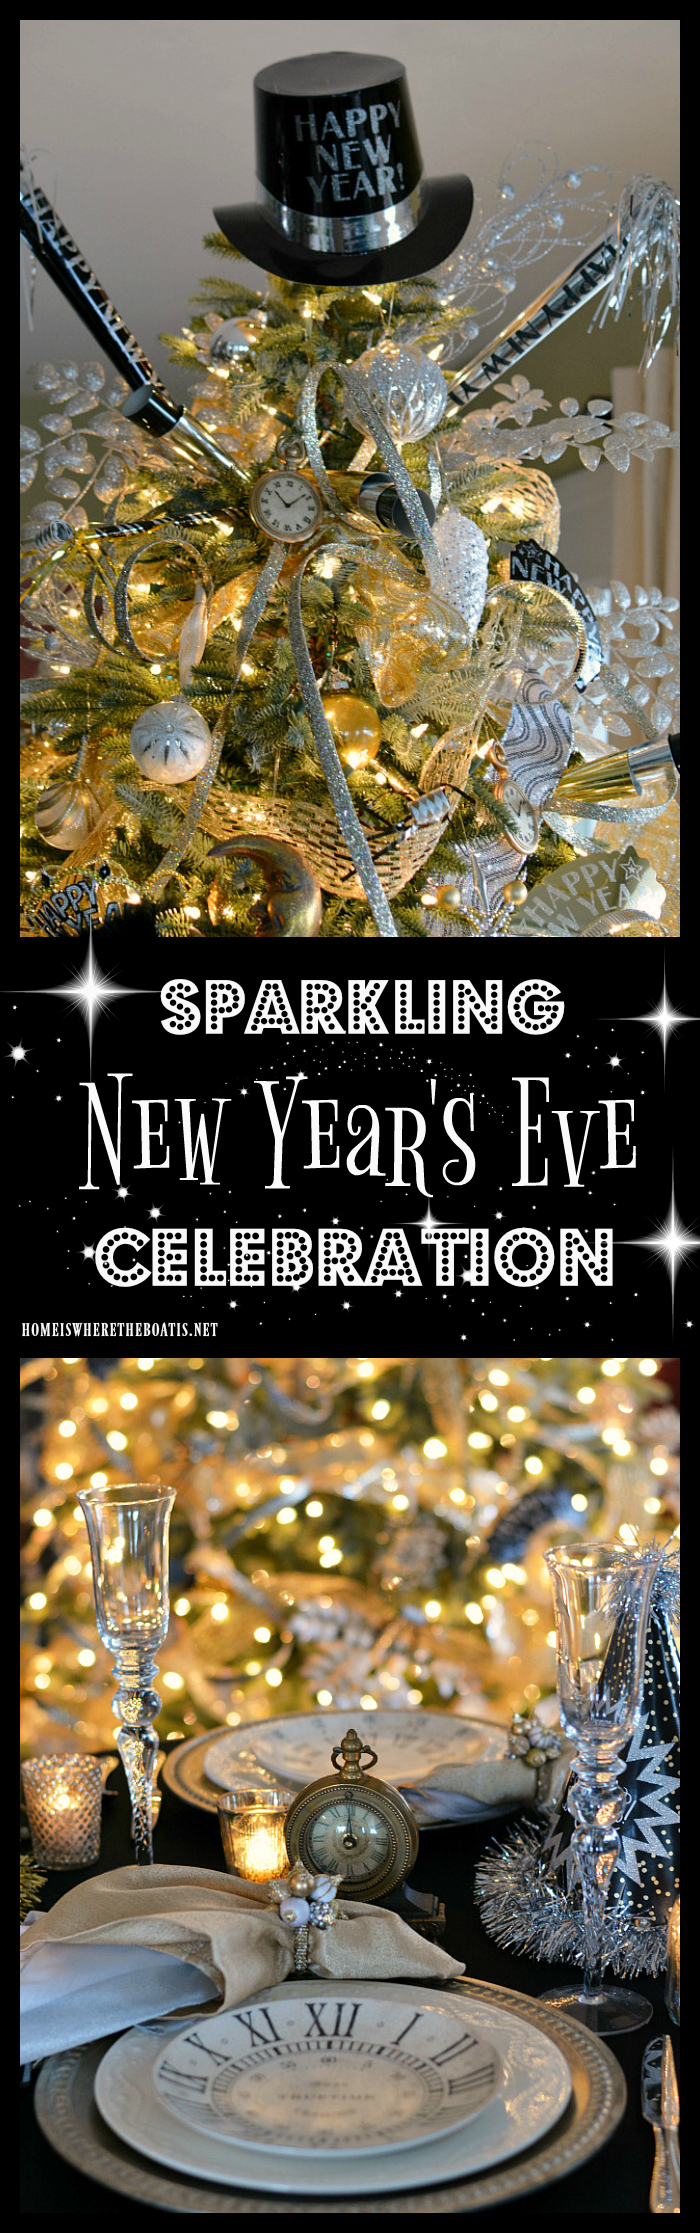 sparkling-new-years-eve-celebration